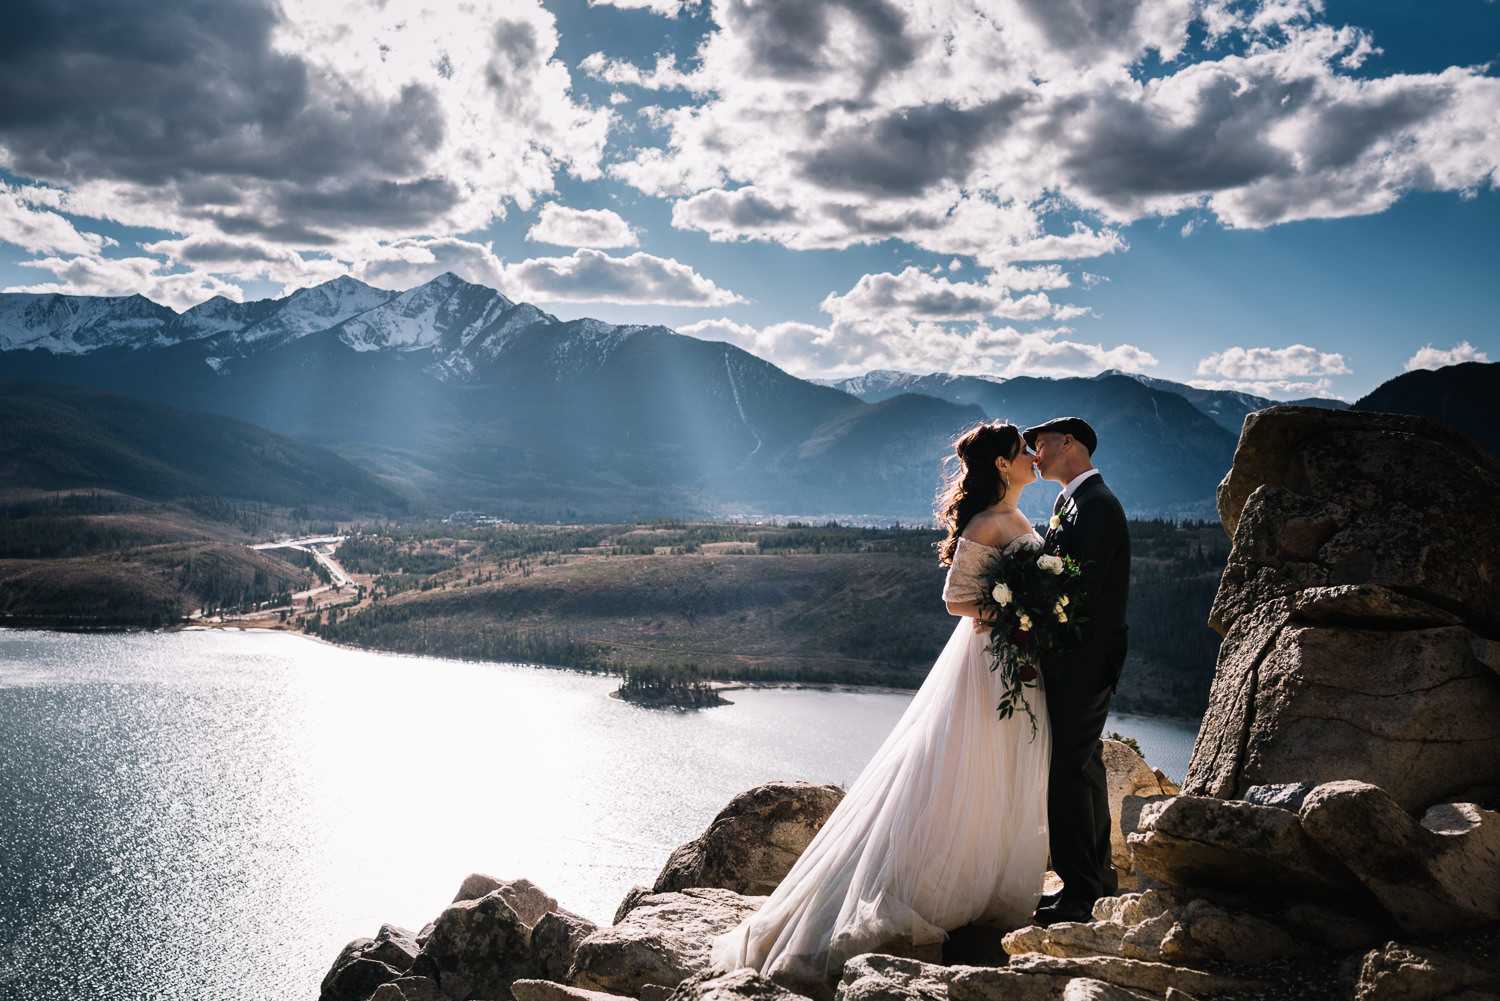 Collection 3 - $450010 hours of wedding day coverage+600 images delivered